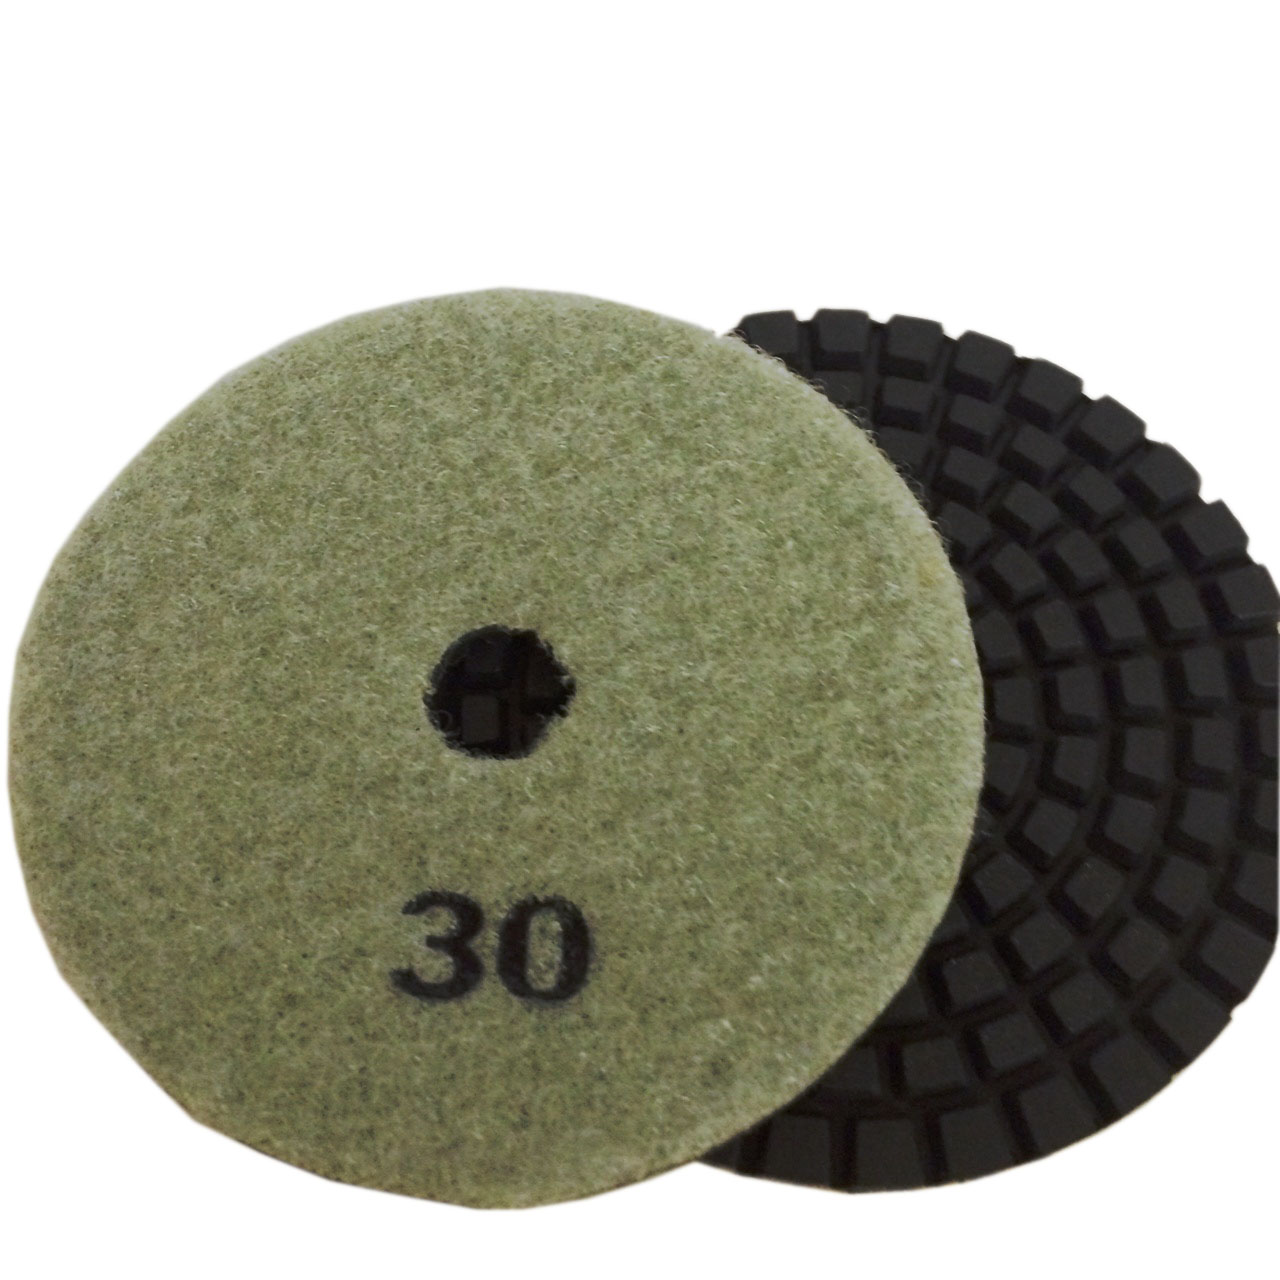 3 Inch  30 Grit Diamond Disc to fit a Flex Angle Grinder